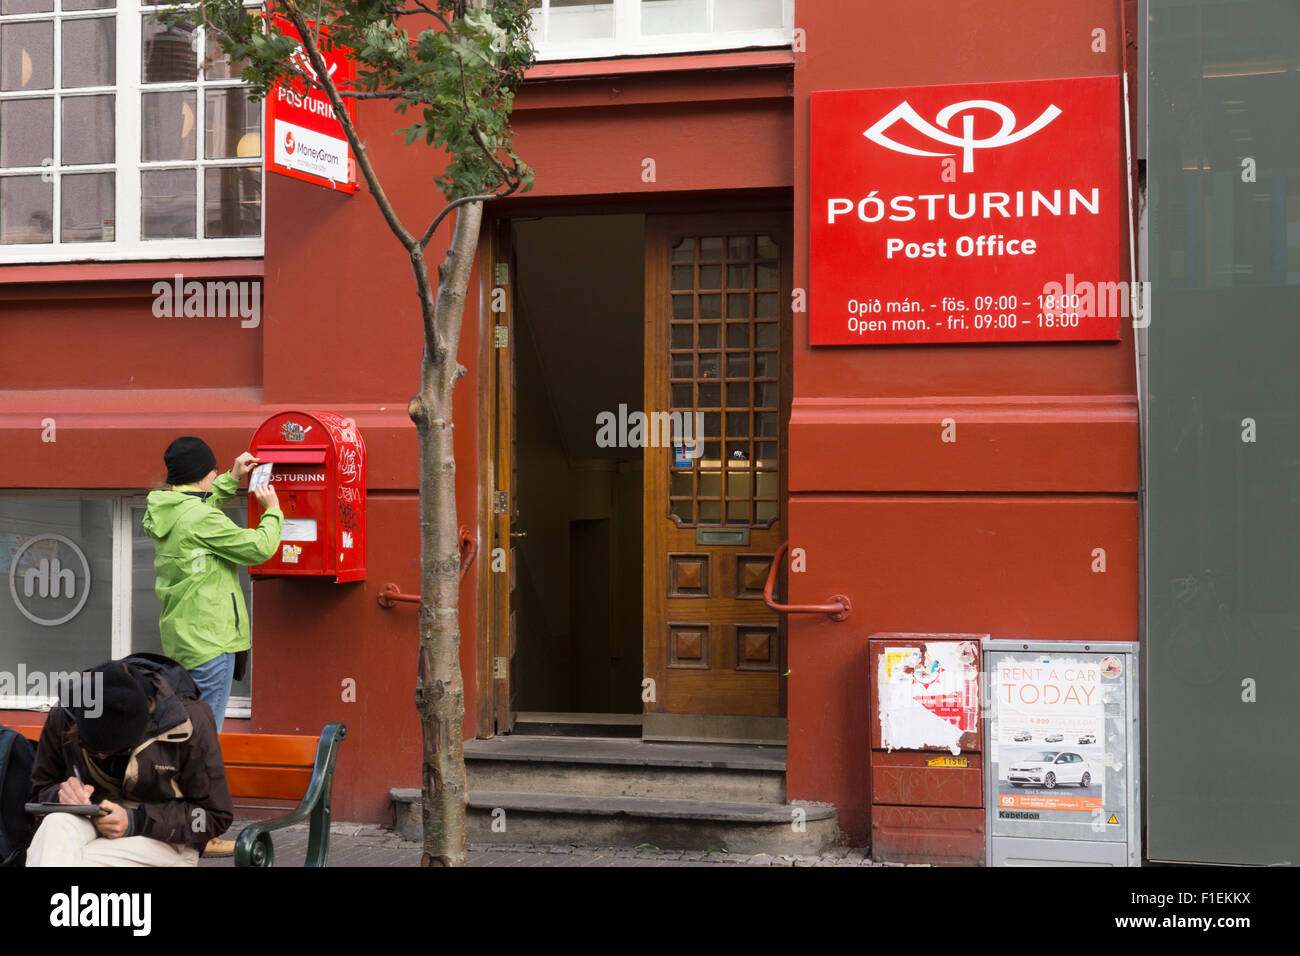 A female tourist posting postcards at the main post office in Reykjavik city centre - Stock Image